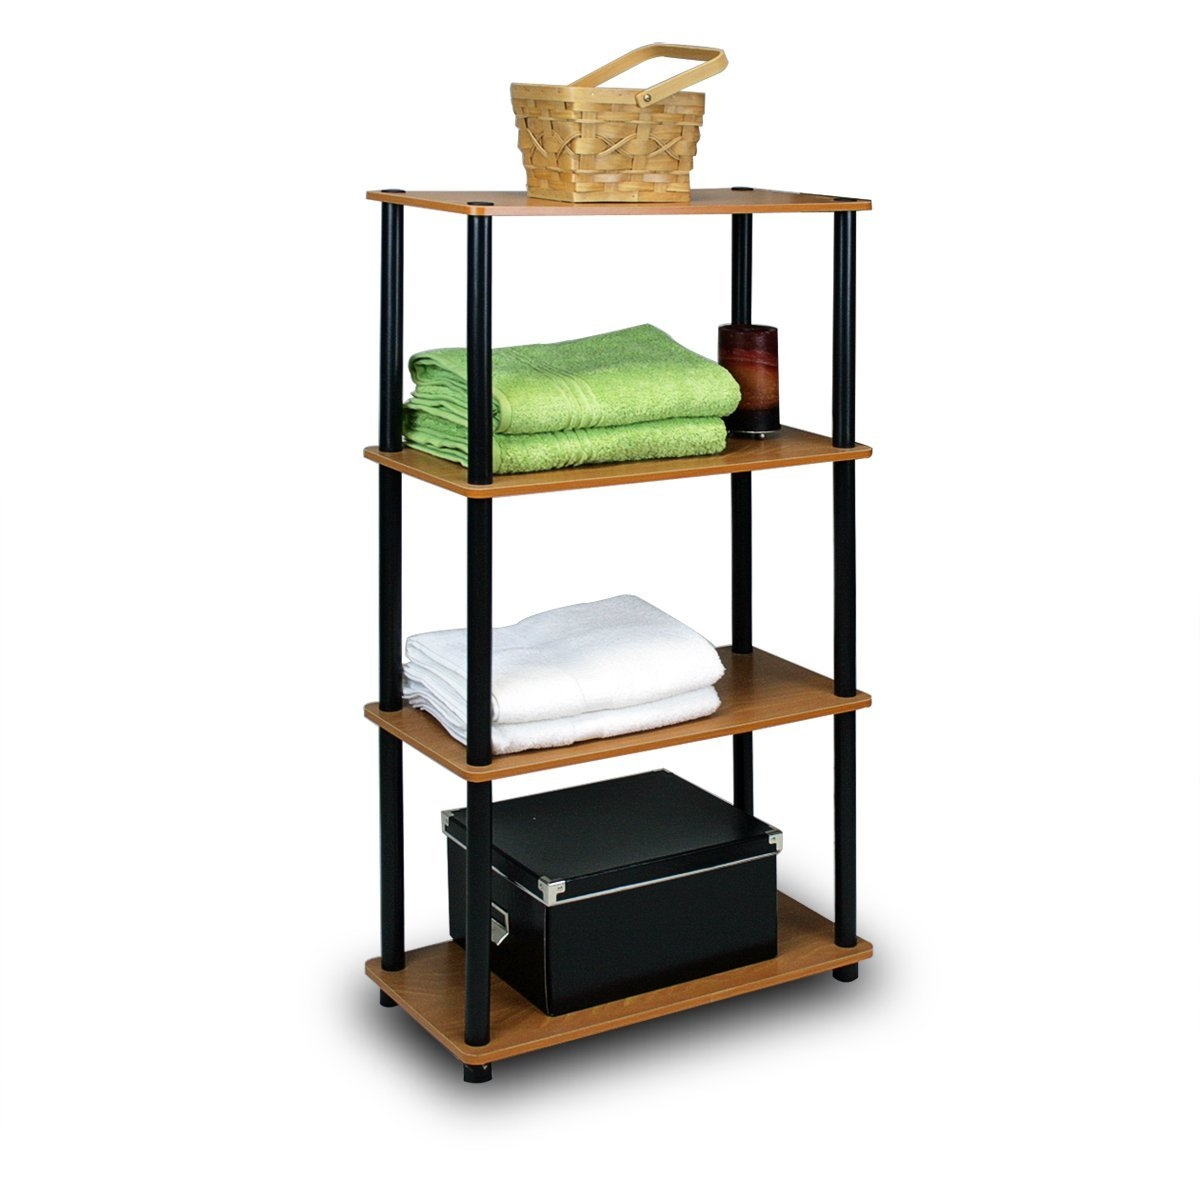 This 4-Tier Storage Shelf Display Rack Bookcase in Cherry Finish is designed to meet the demand of low cost but durable and efficient furniture. It is proven to be the most popular furniture due to its functionality, price, and the no hassle assembly. The materials comply with e1 grade particle board for furniture. There is no foul smell of chemicals, durable and it is the most stable particleboard used to make furniture. Care instructions: wipe clean with clean damped cloth. Avoid using harsh chemicals. We are pleased to send you the replacement part free of charge. Pictures are for illustration purpose. All decor items are not included in this offer. Pictures are for illustration purpose. All decor items are not included in this offer.